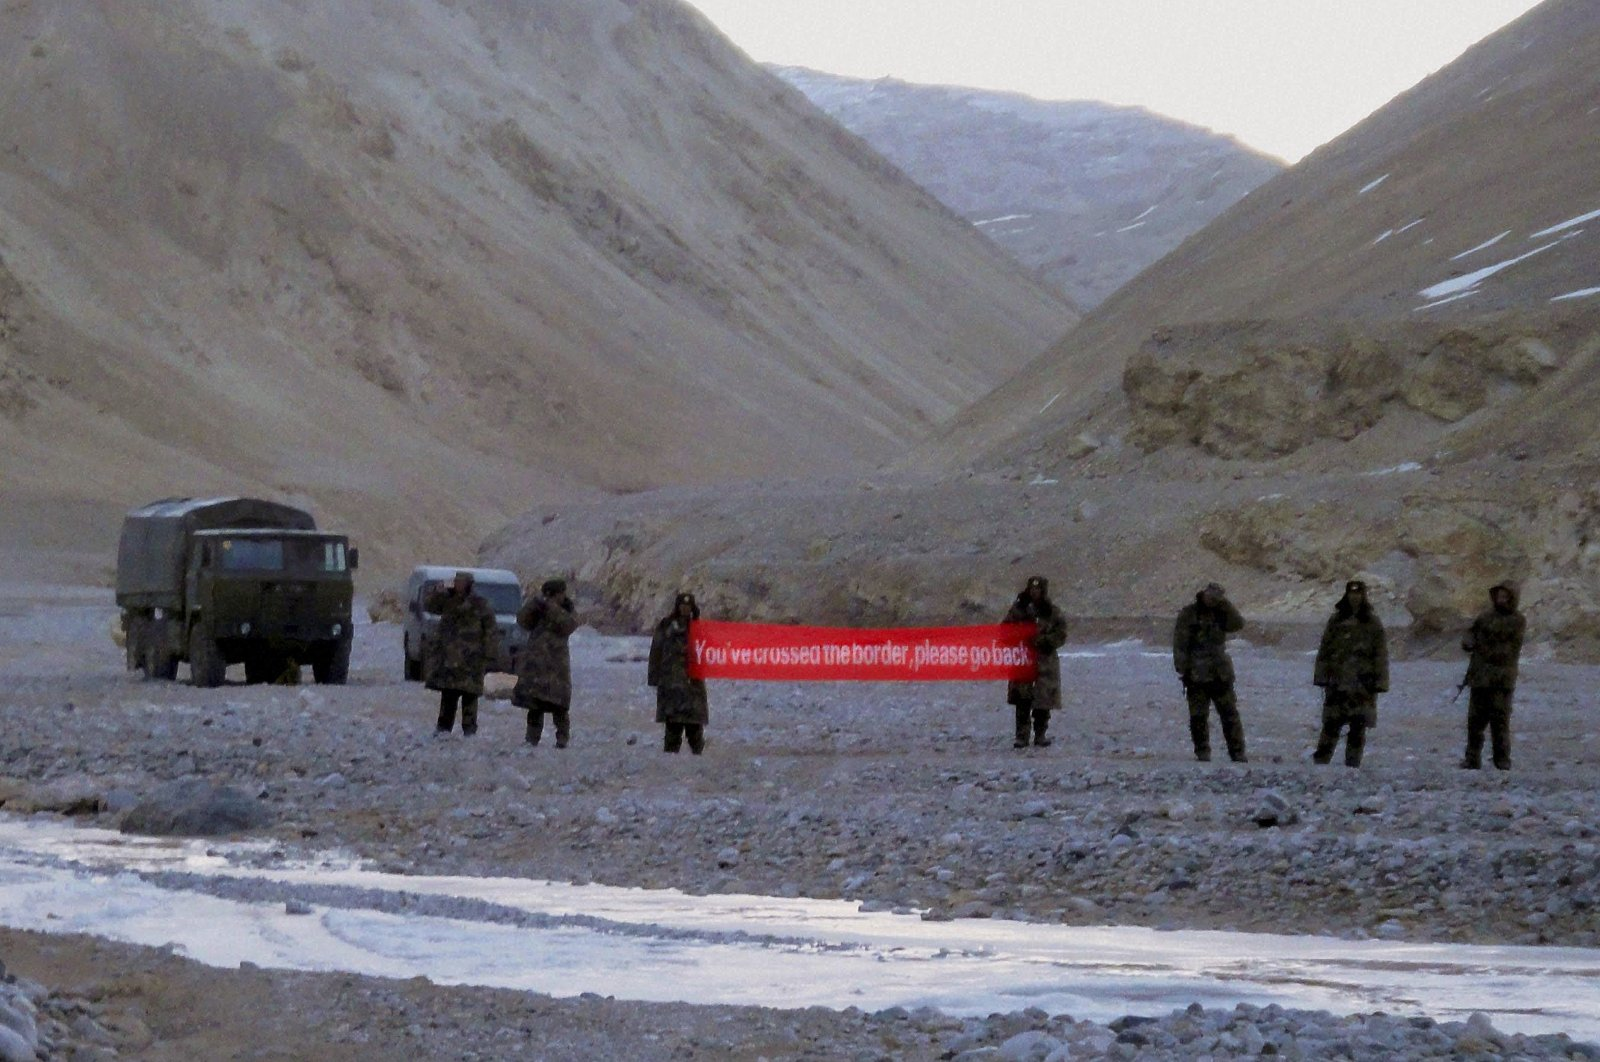 """In this file photo, Chinese troops hold a banner that reads: """"You've crossed the border, please go back"""" in Ladakh, India, May 5, 2013. (AP Photo)"""